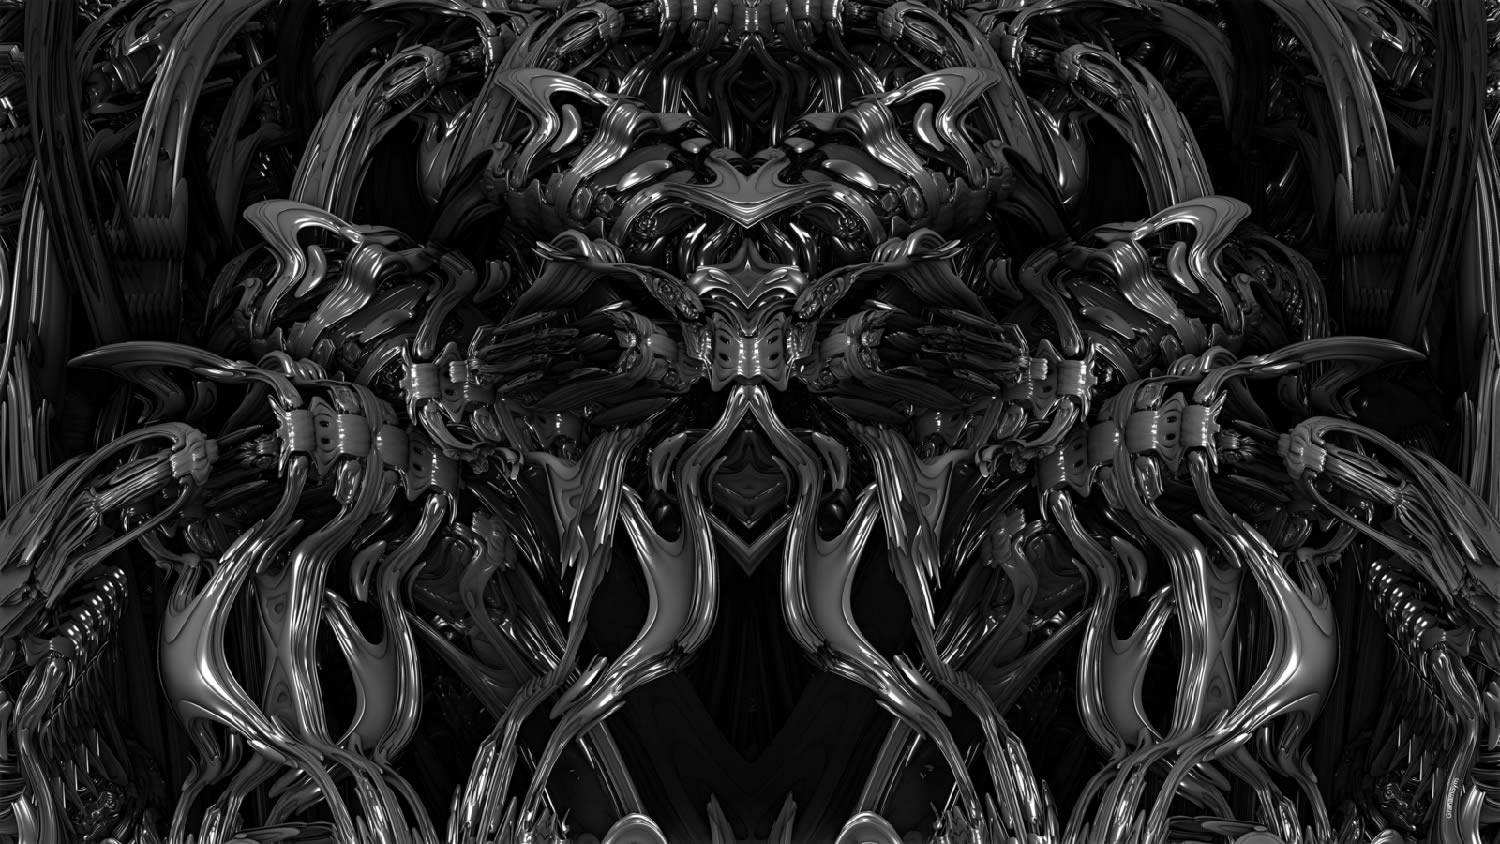 giger style art by Graham Symmons